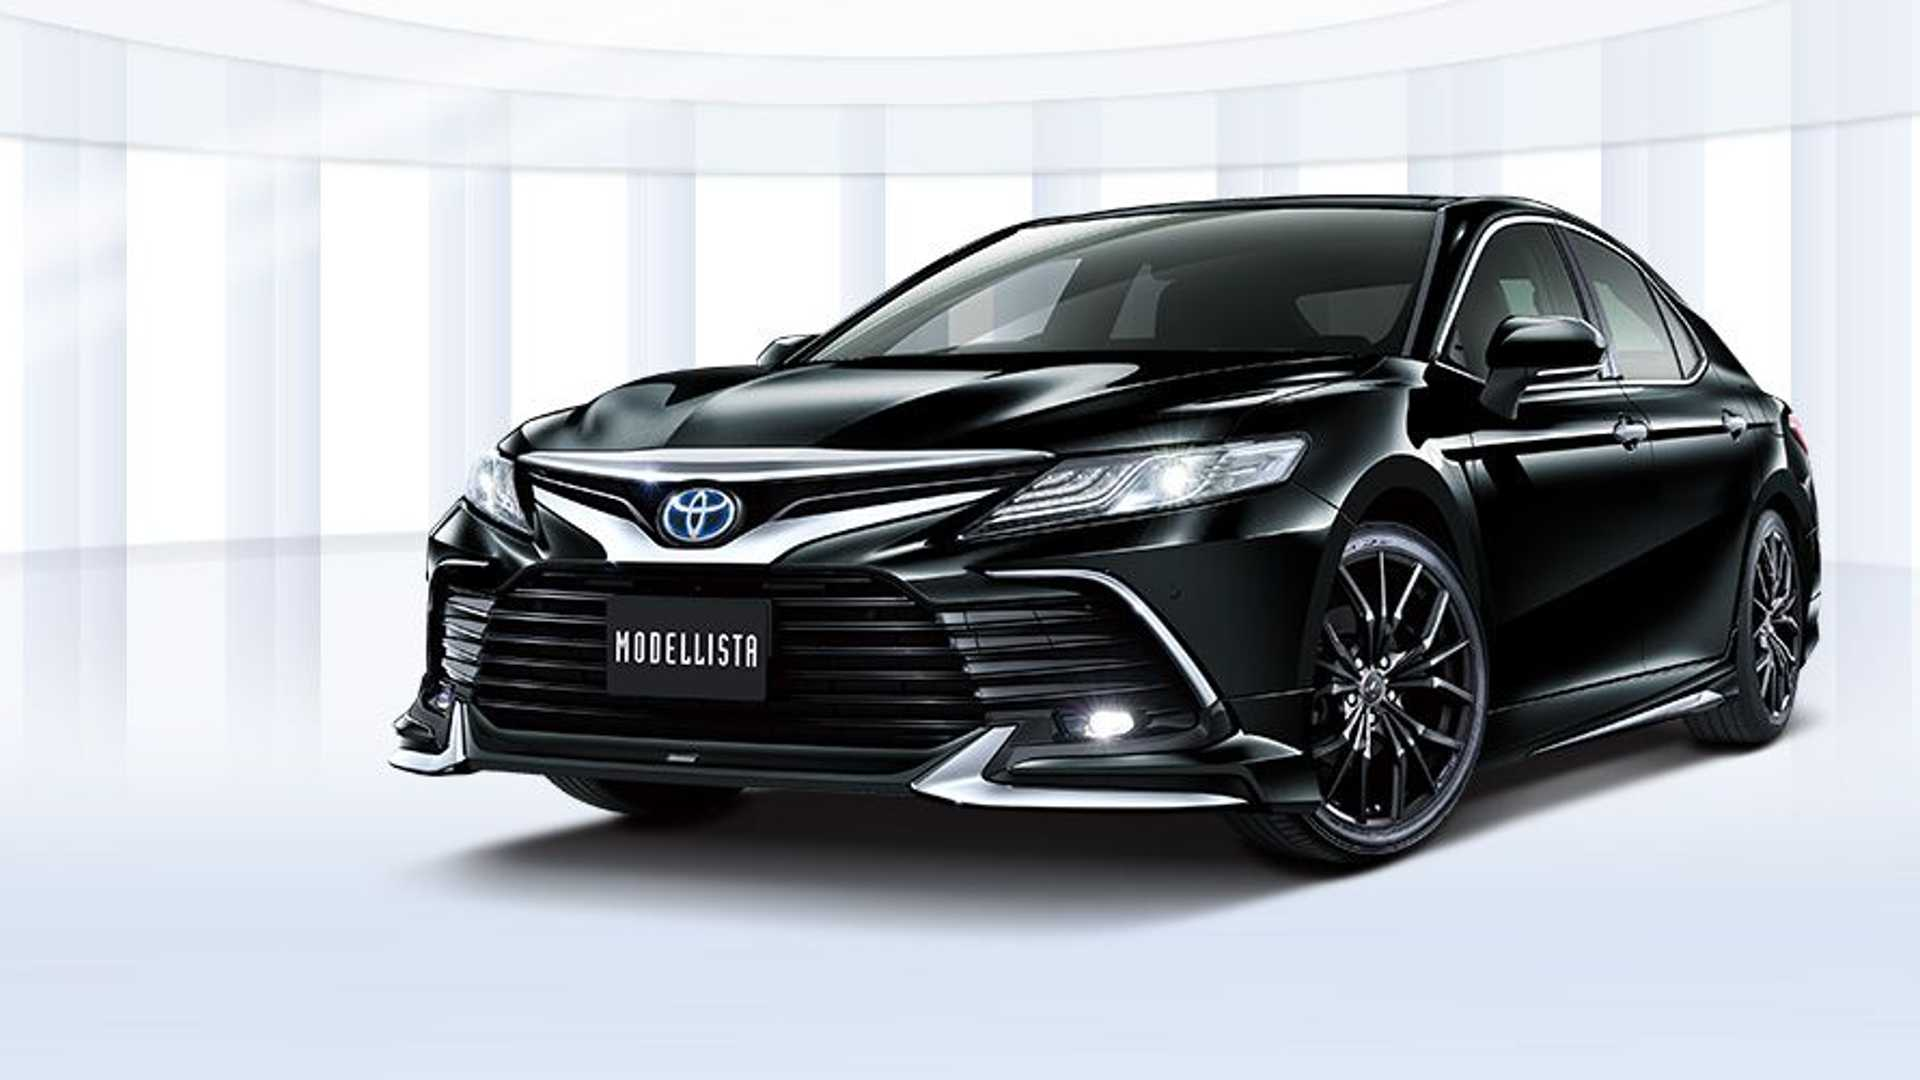 toyota-camry-modellista-black-three-quarters